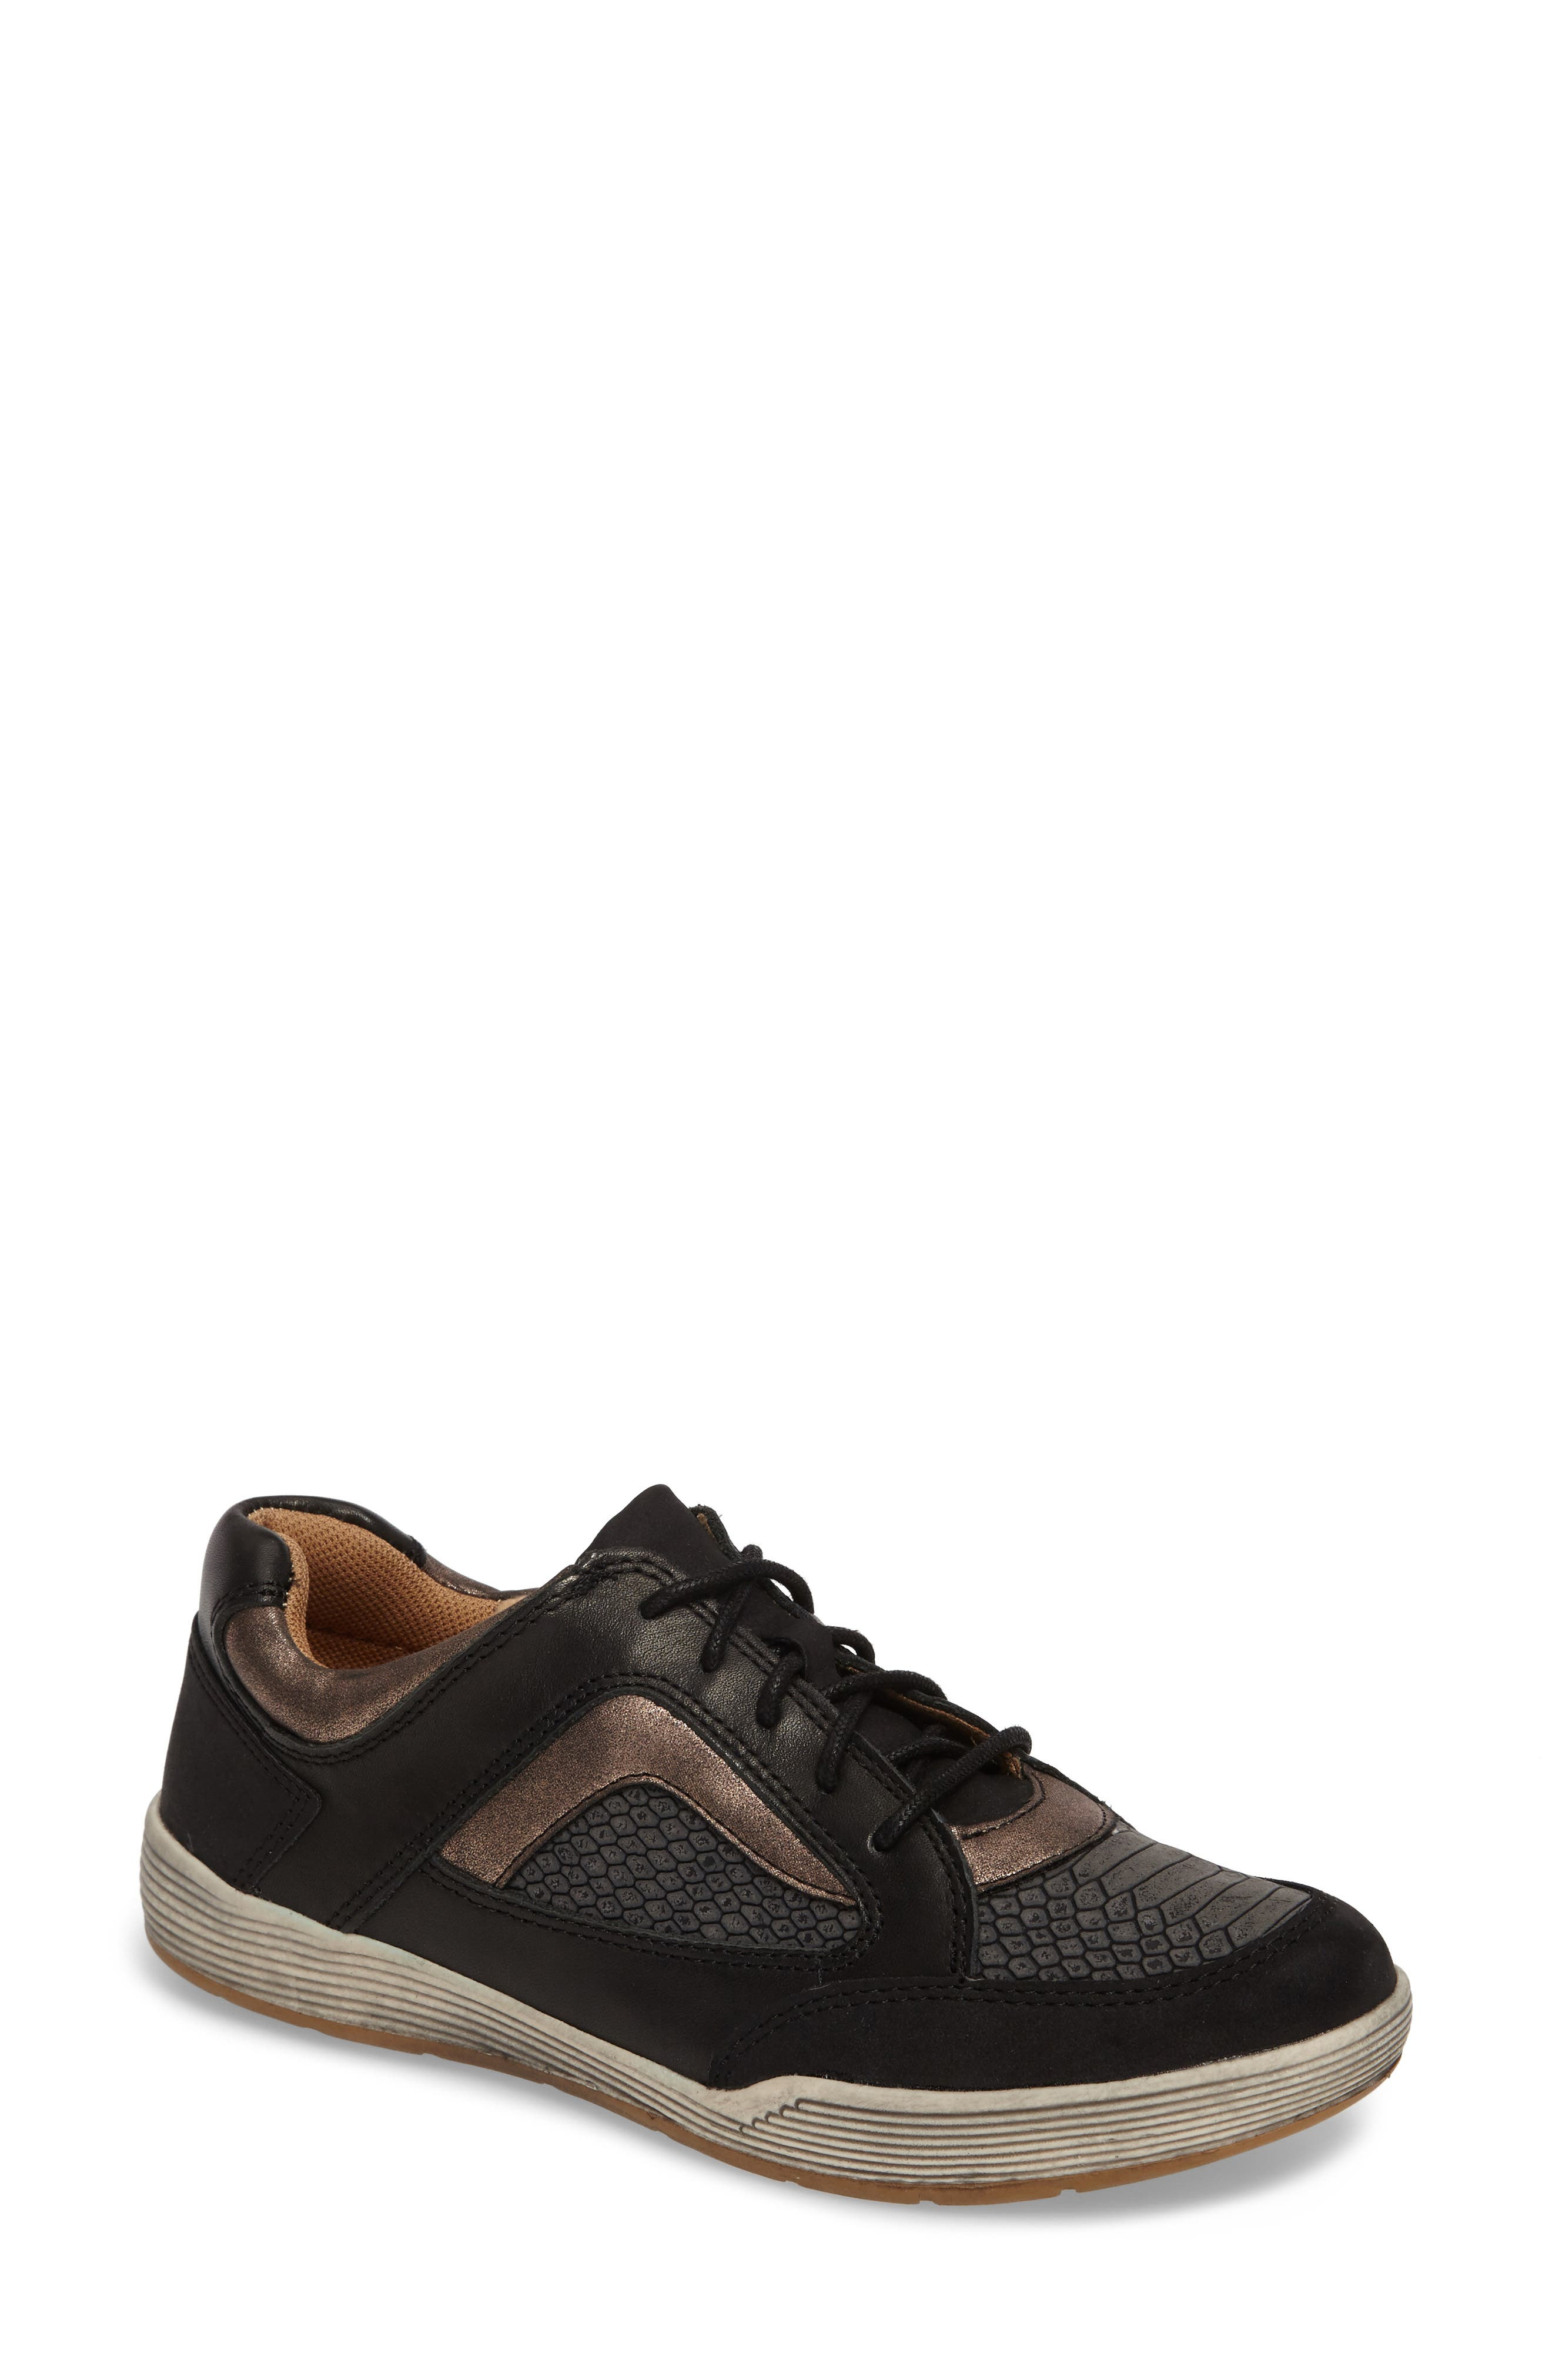 Lemont Snake Embossed Sneaker,                         Main,                         color, BLACK SNAKE PRINT LEATHER